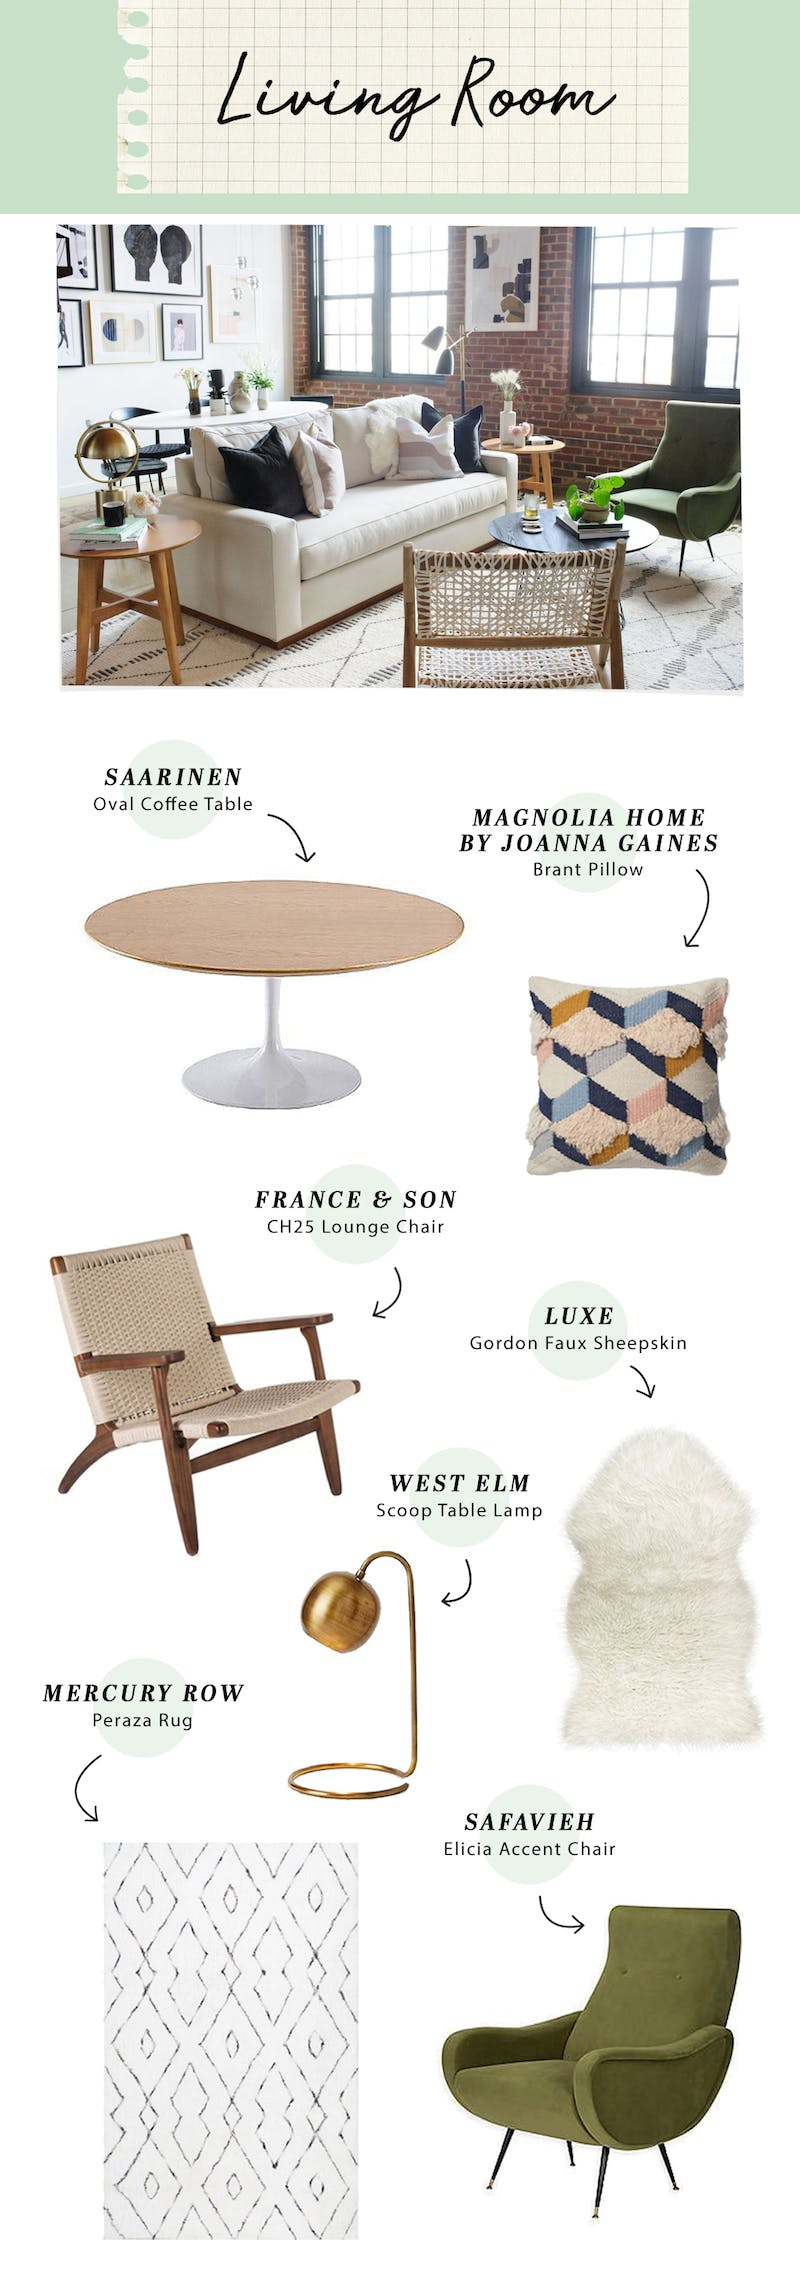 jamie chung mini apartment decor ideas get the look living room pottery barn accent table brit best patio furniture small outside and chairs affordable white slim side wood dining